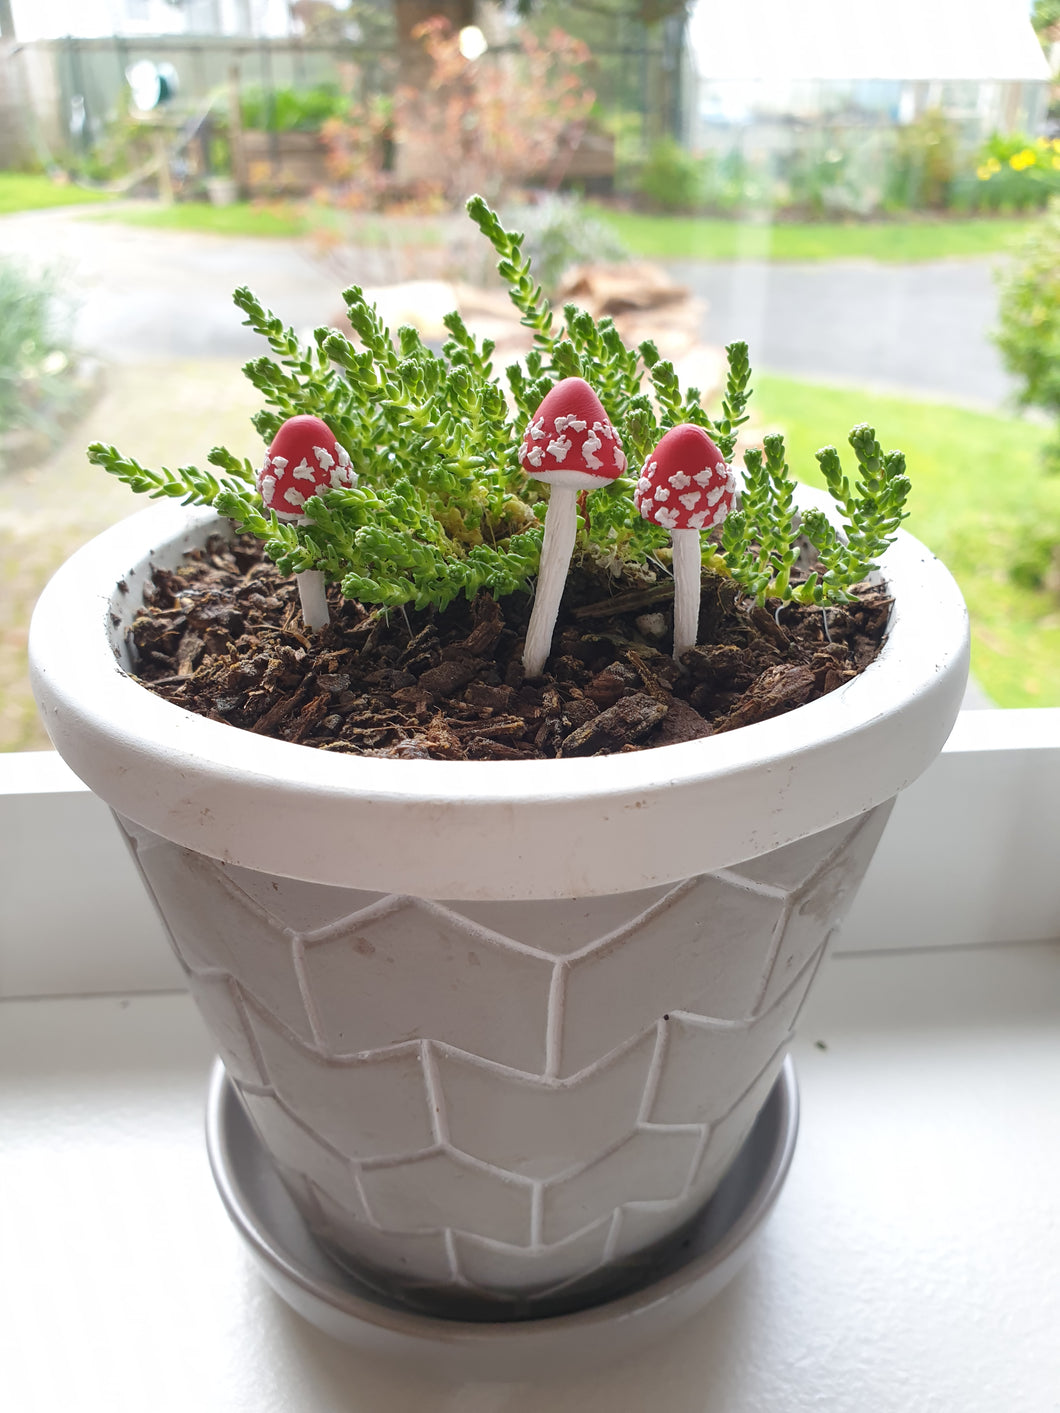 Mushroom mini fairy garden stakes - rounded tops